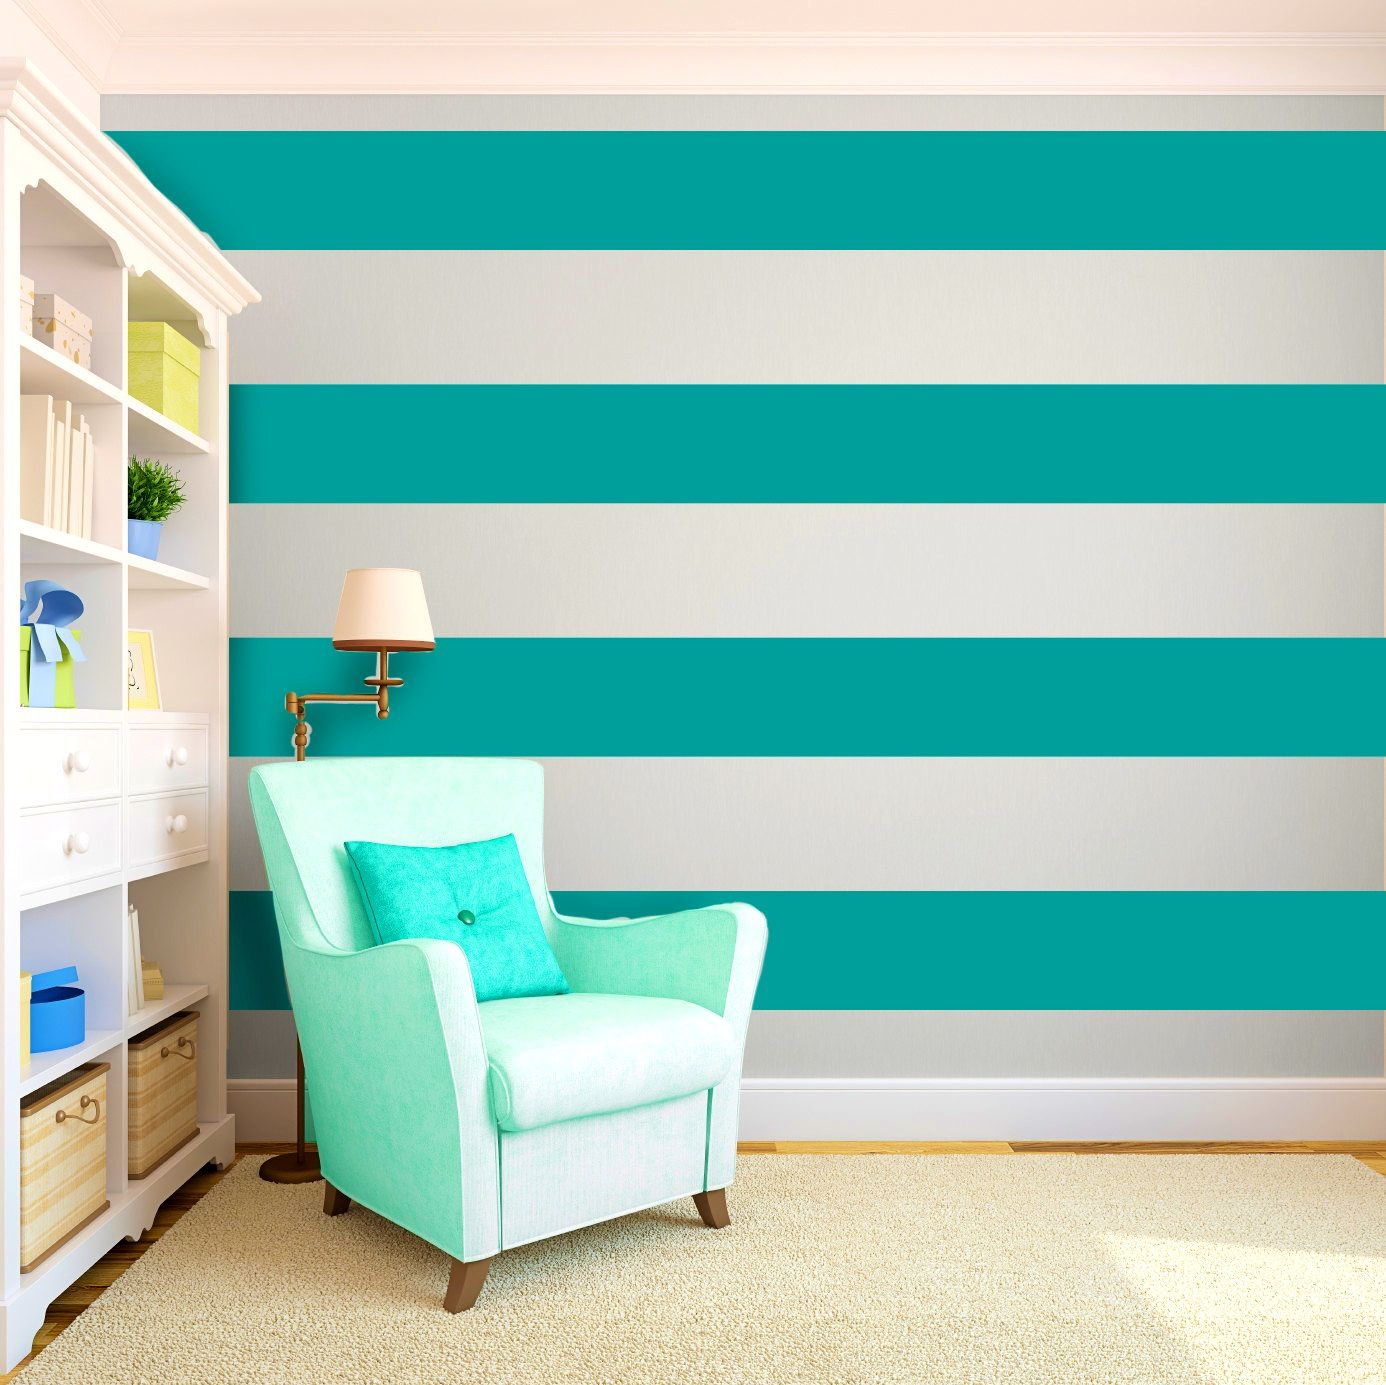 Interior Wall Painting Ideas Techniques Part - 43: BathroomAppealing Cool Painting Ideas That Turn Walls And Ceilings Into A  Statement Striped Bedroom Turquoise Wall